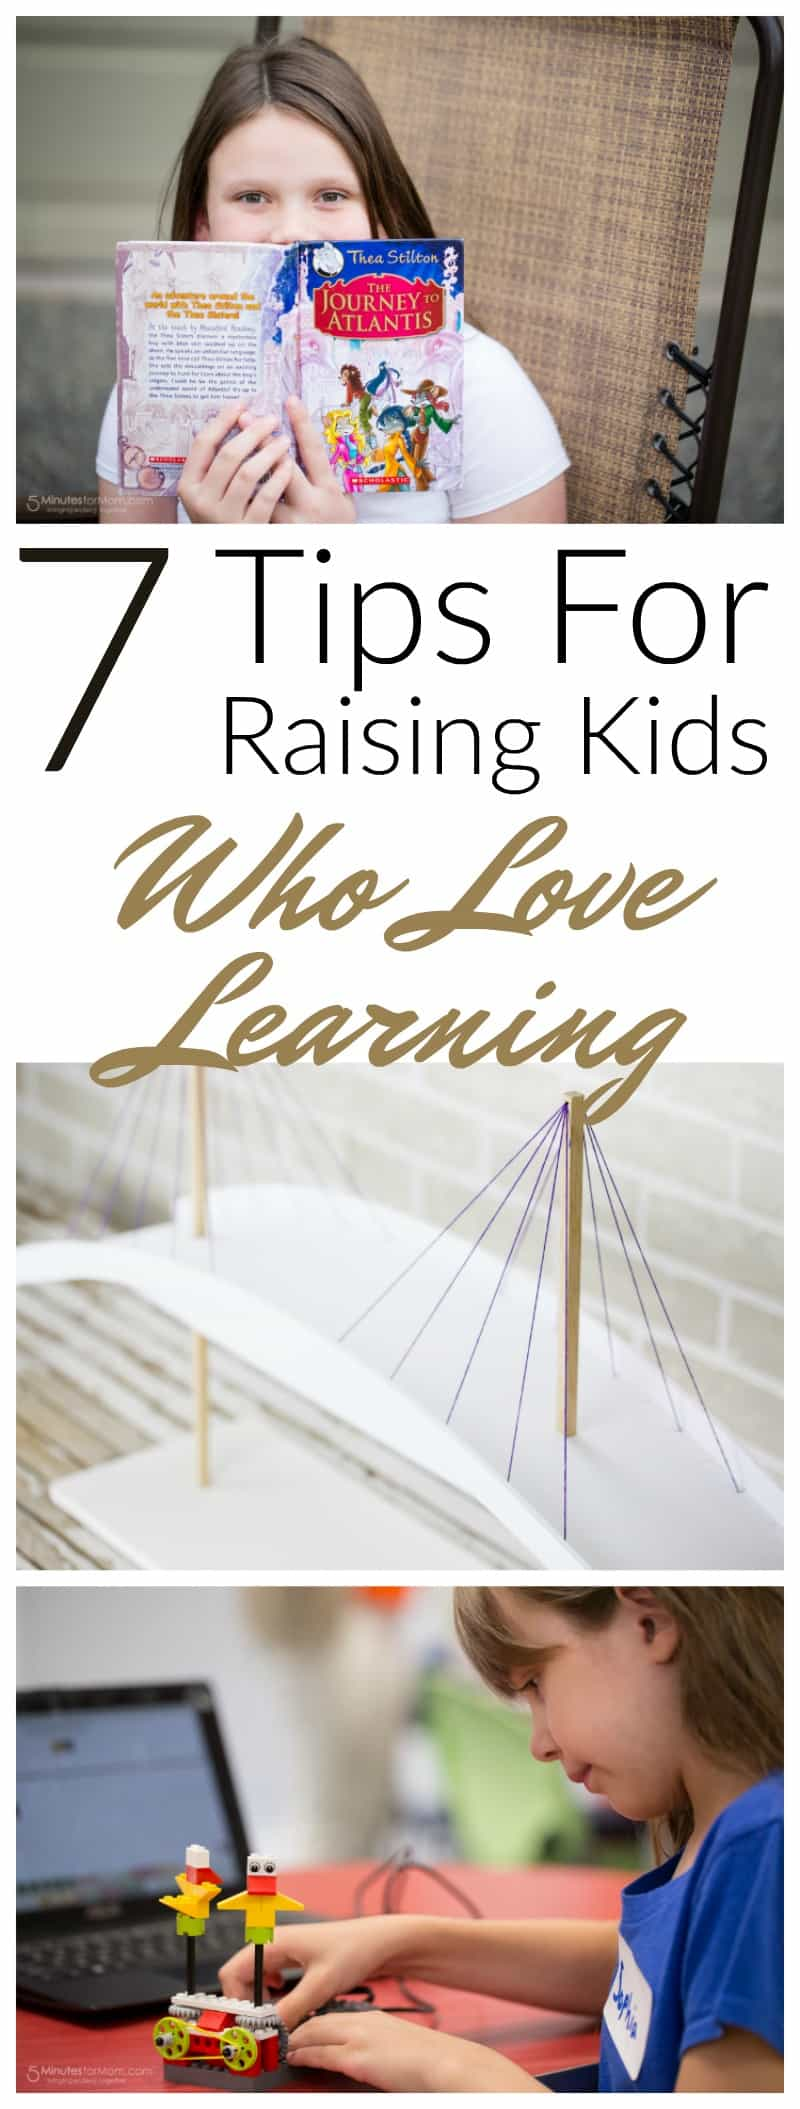 7 Tips For Raising Kids Who Love Learning